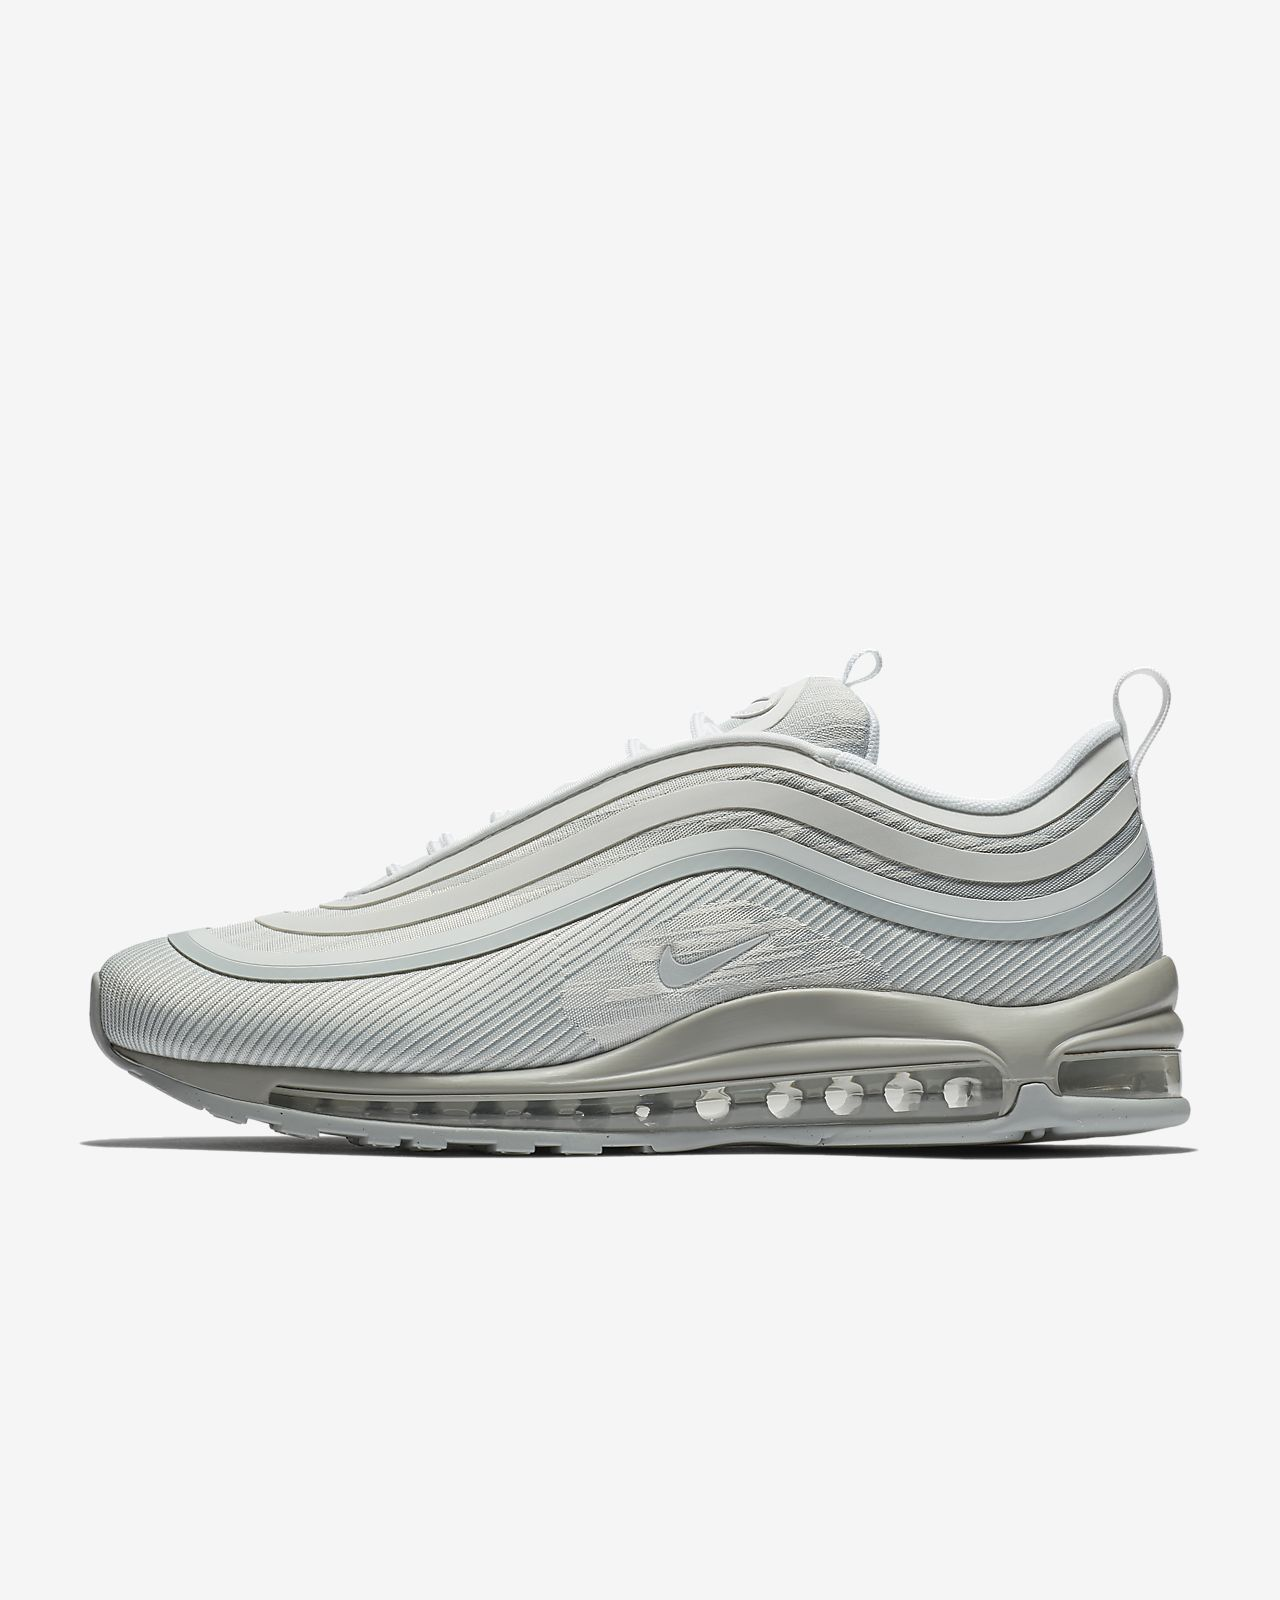 nike women air max 97 gold 6.5